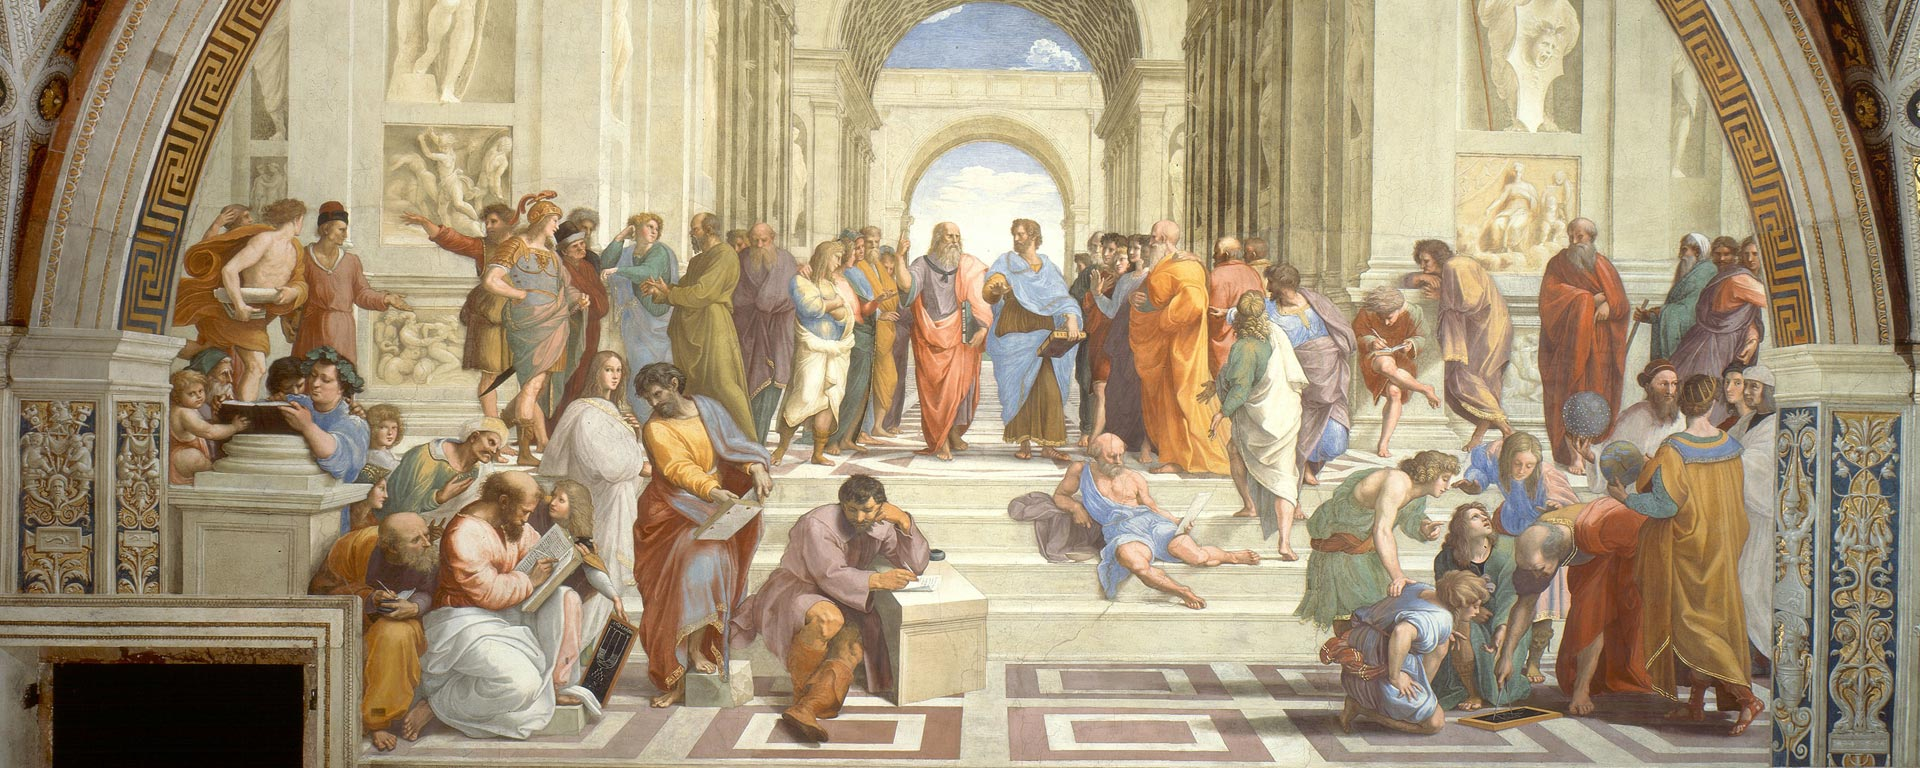 a study of the renaissance period on the website learnerorg View and download renaissance period essays examples also discover topics, titles, outlines, thesis statements, and conclusions for your renaissance period essay.